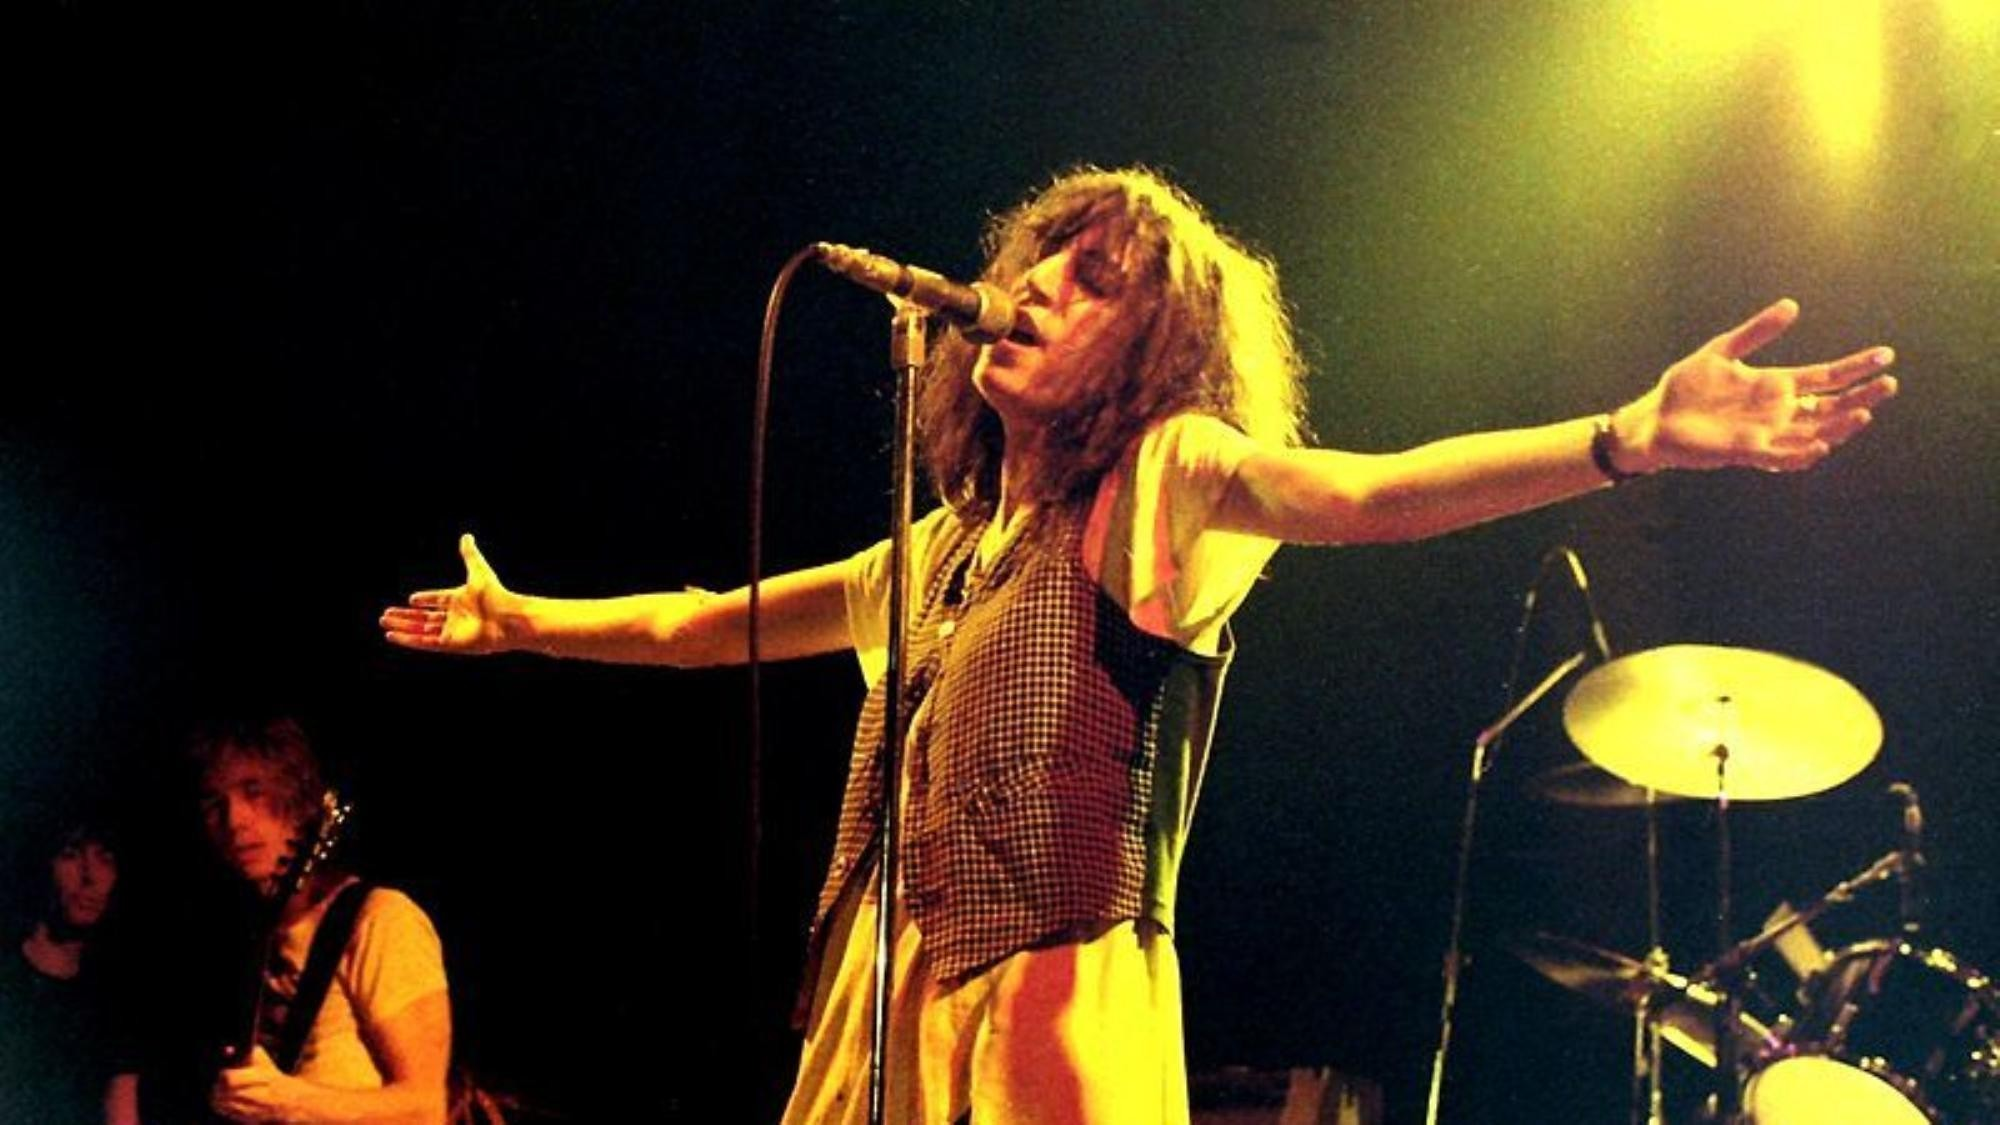 patti smith wrote a wonderful essay about fumbling her bob dylan tribute